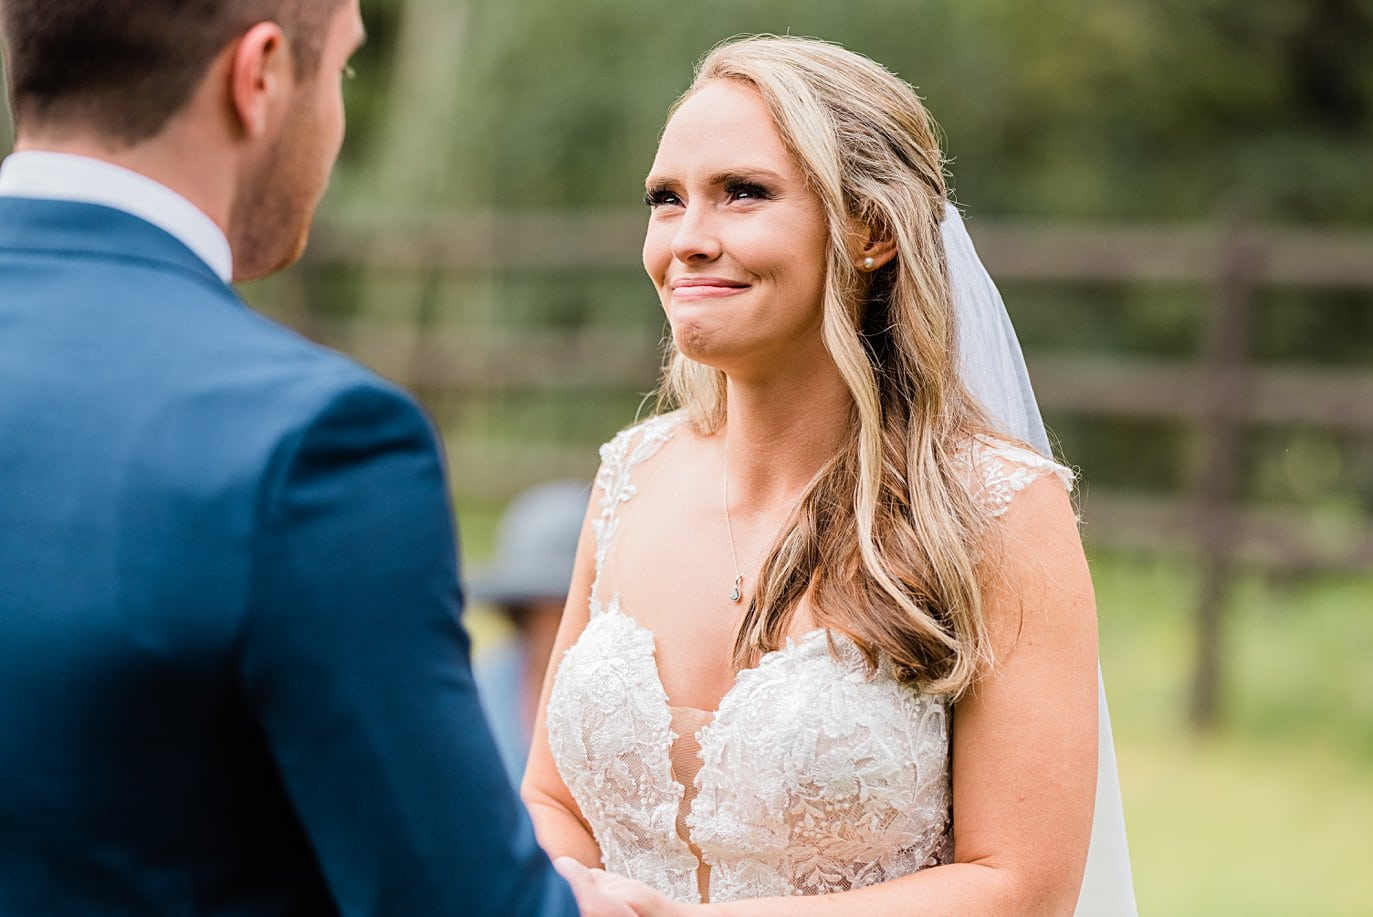 bride looks at groom with tears in her eye at Larkspur Vail Wedding by Lyons Wedding photographer Jennie Crate